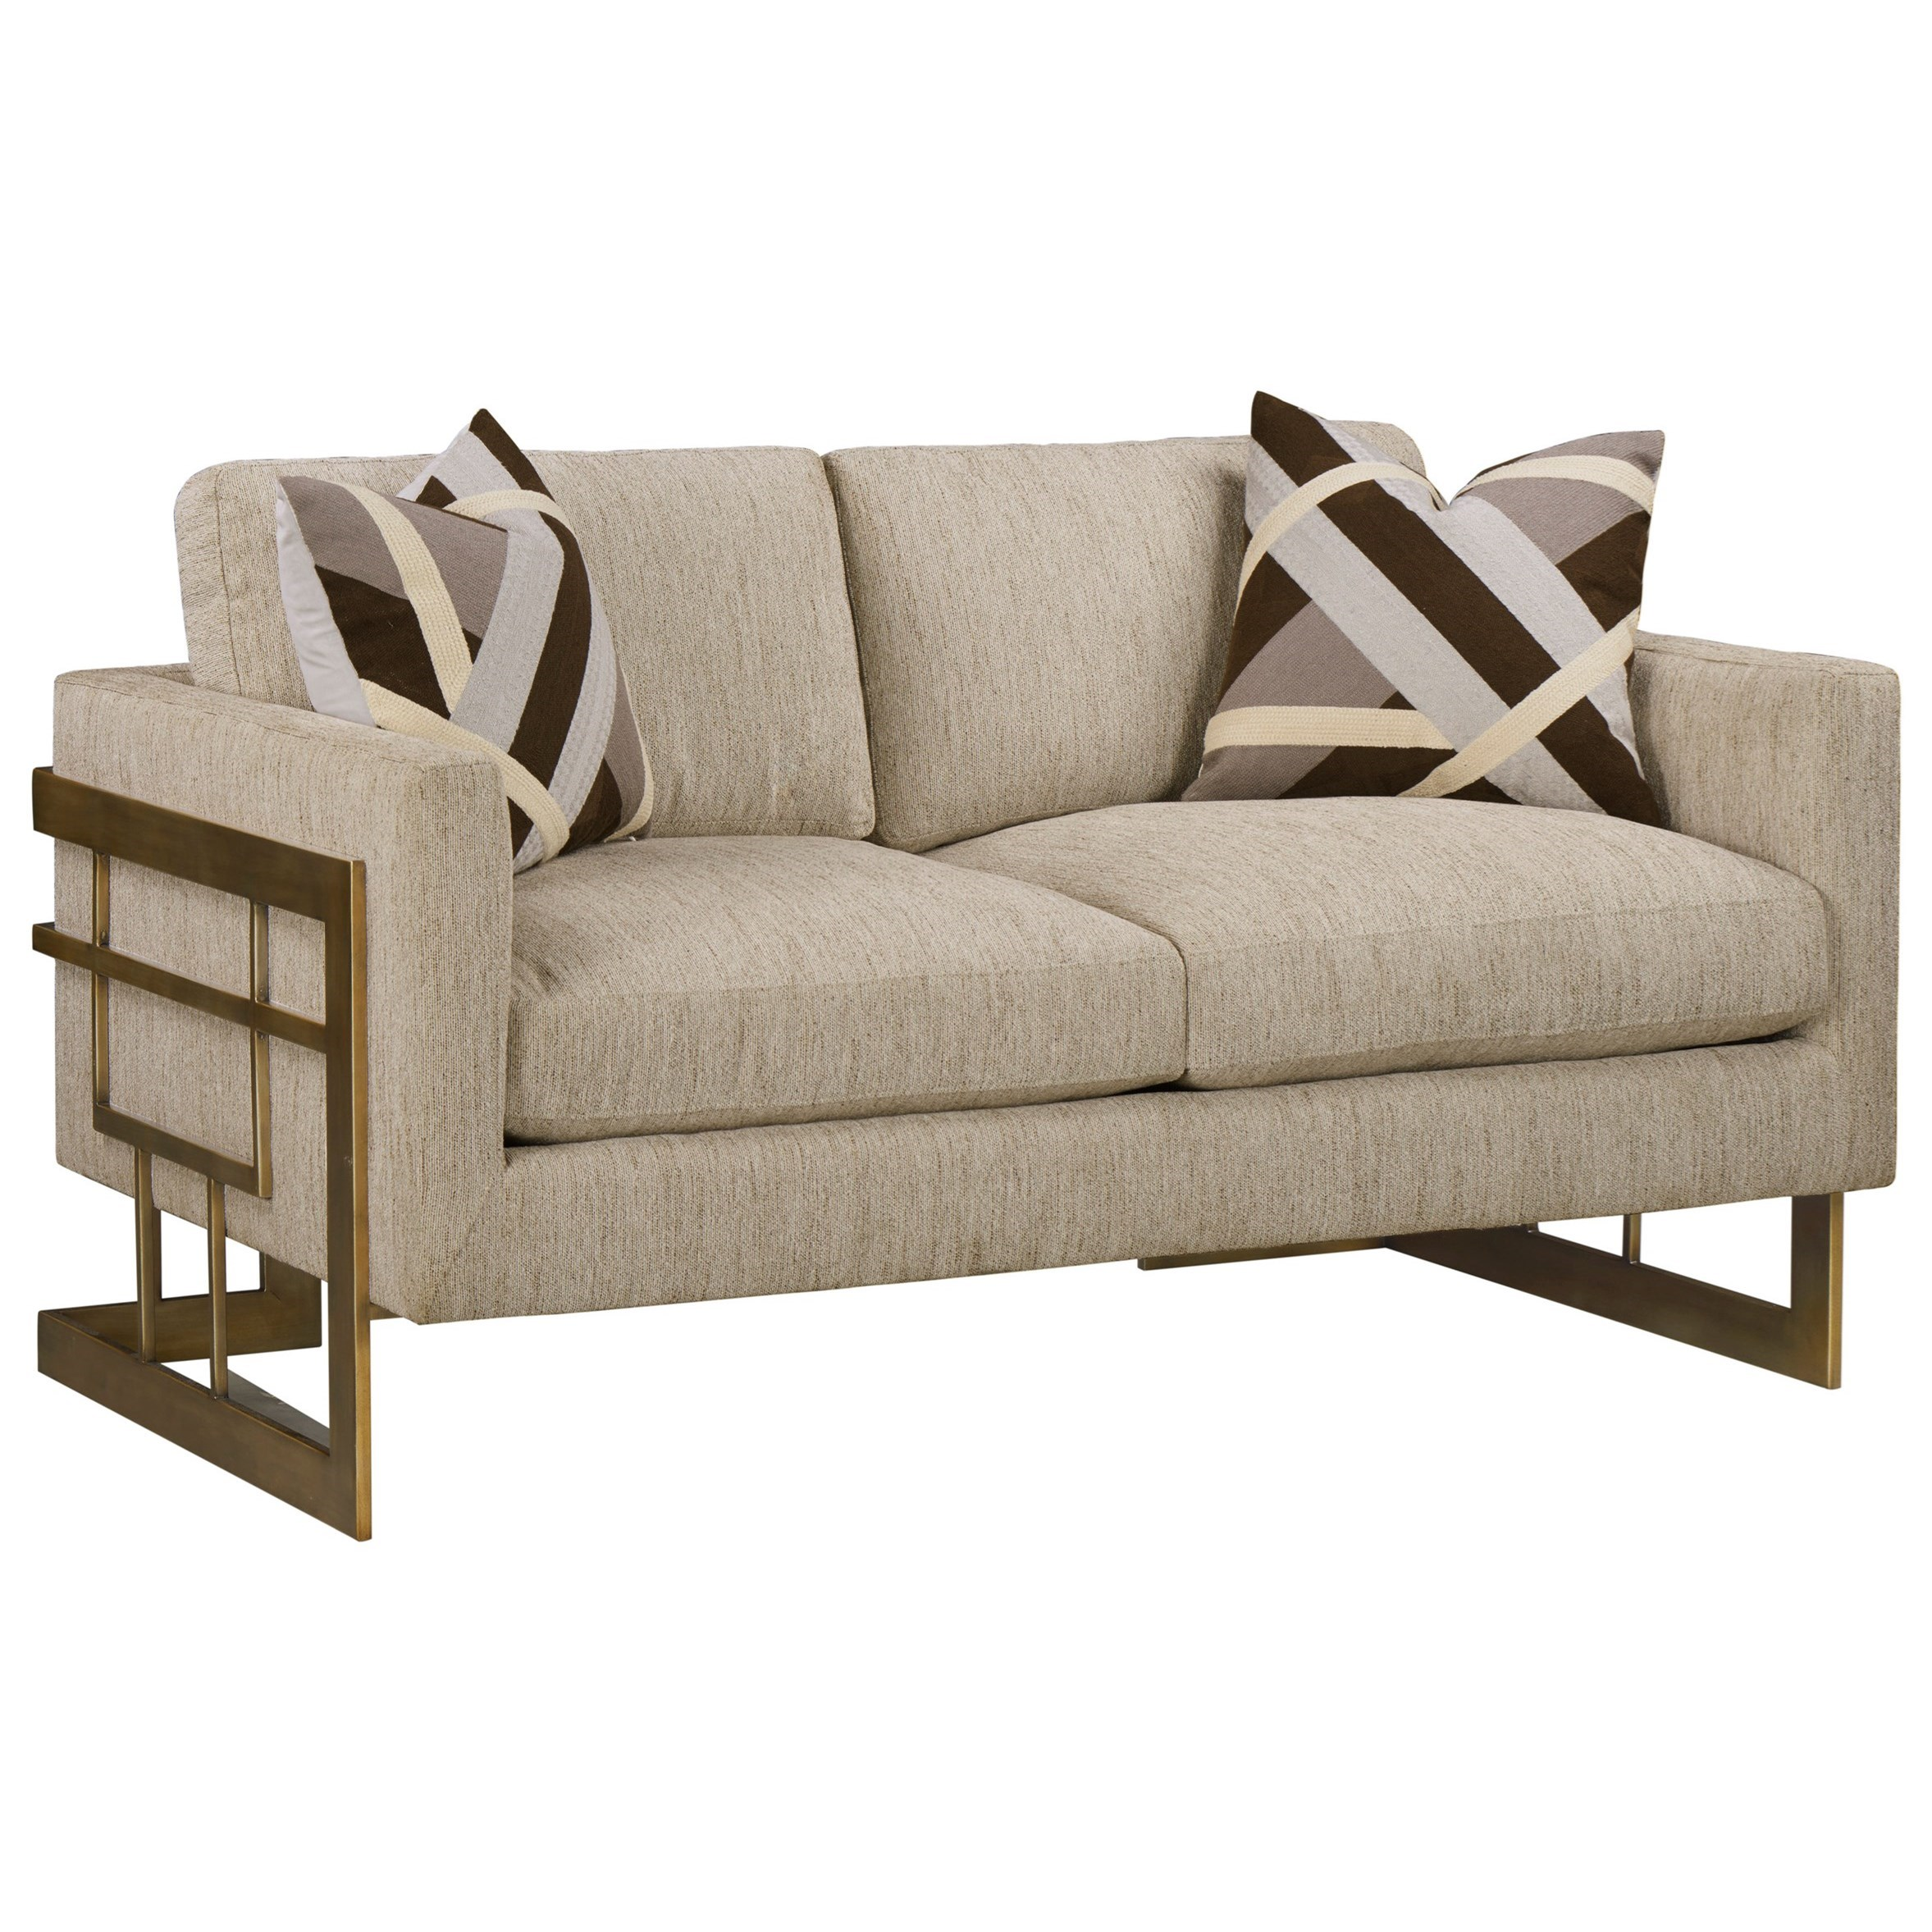 WoodWright Upholstery Loveseat by A.R.T. Furniture Inc at Powell's Furniture and Mattress